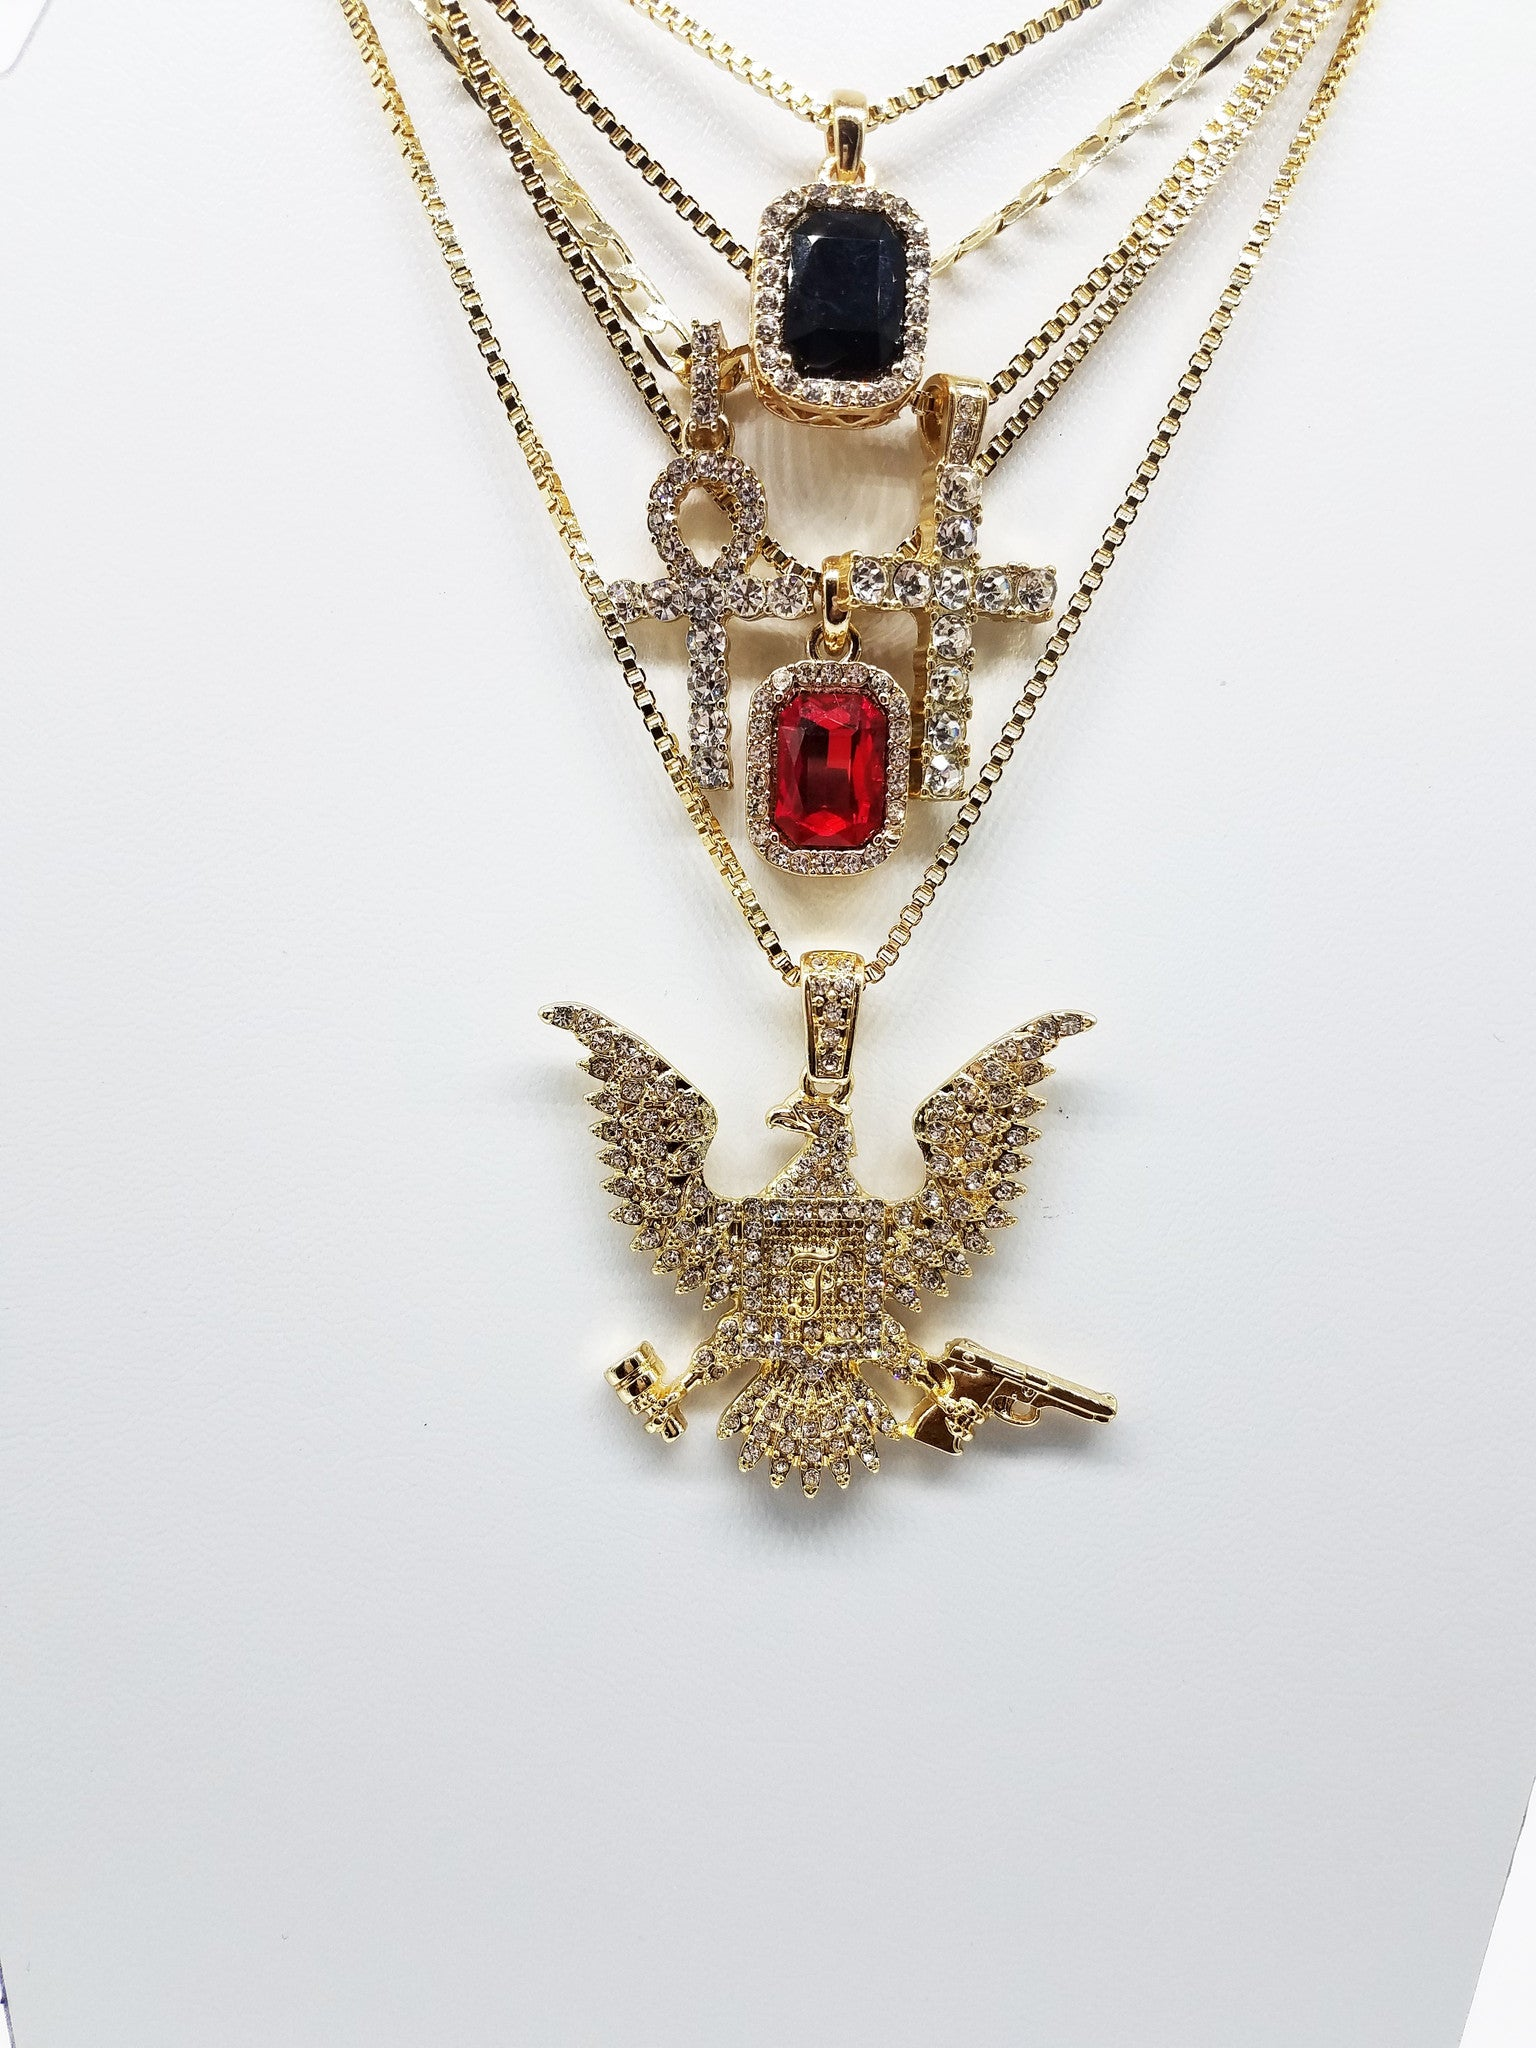 14K Gold Plated 5 Chain Combo:Iced Out Ruby Iced Out Black Gem Iced Out Cross Iced Out Ankh Iced Out FreeBandz Bird